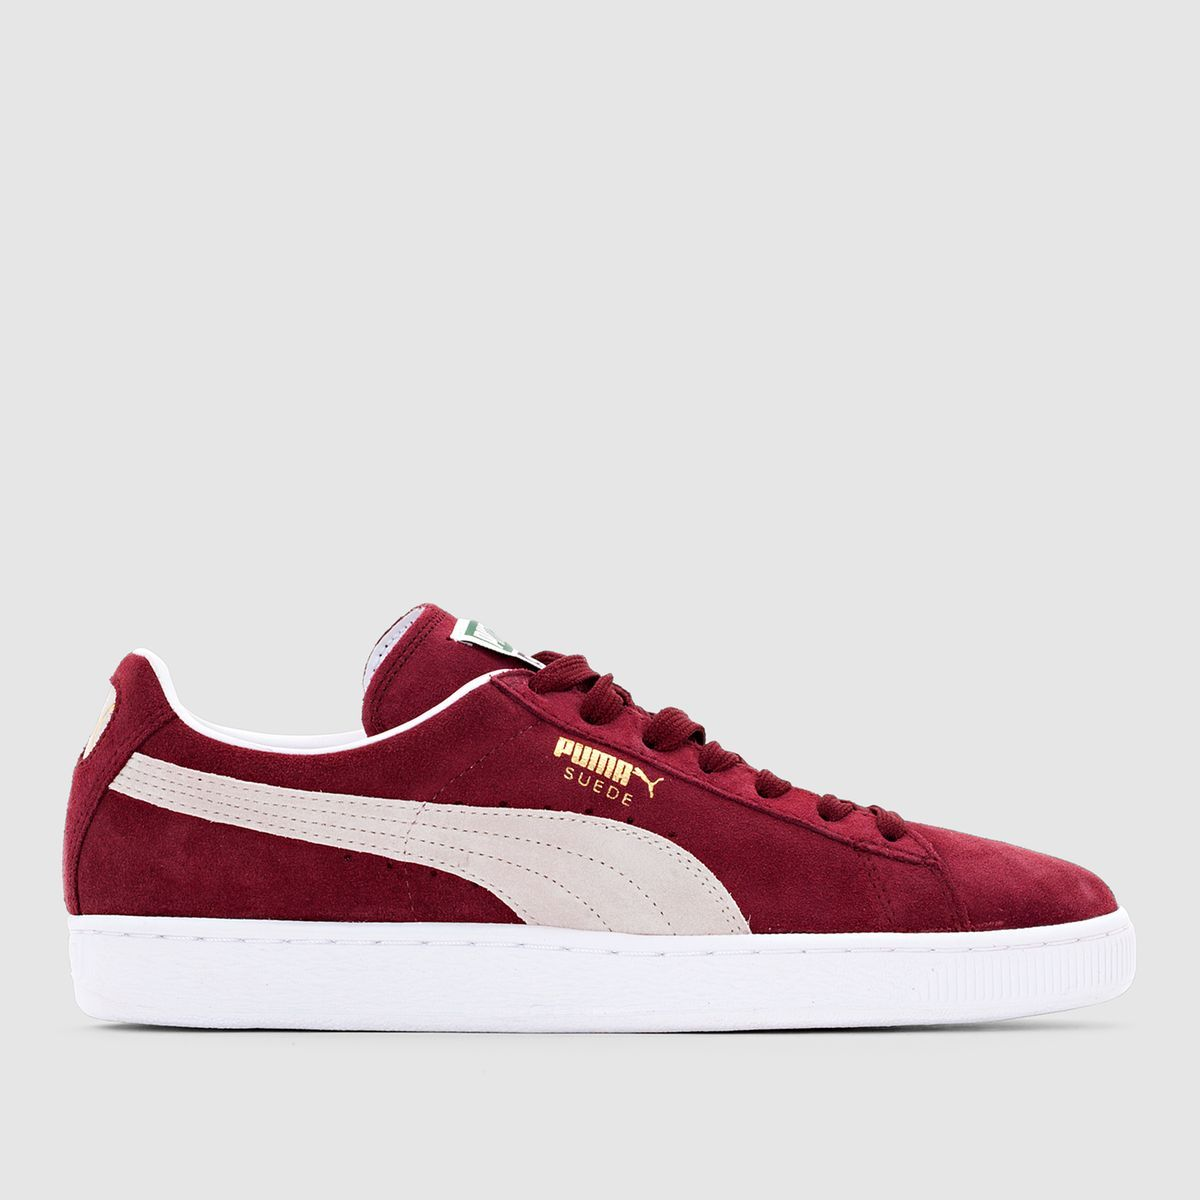 1820899d1c59 Baskets Suede Classic + in 2019 | Products | Chaussure puma ...